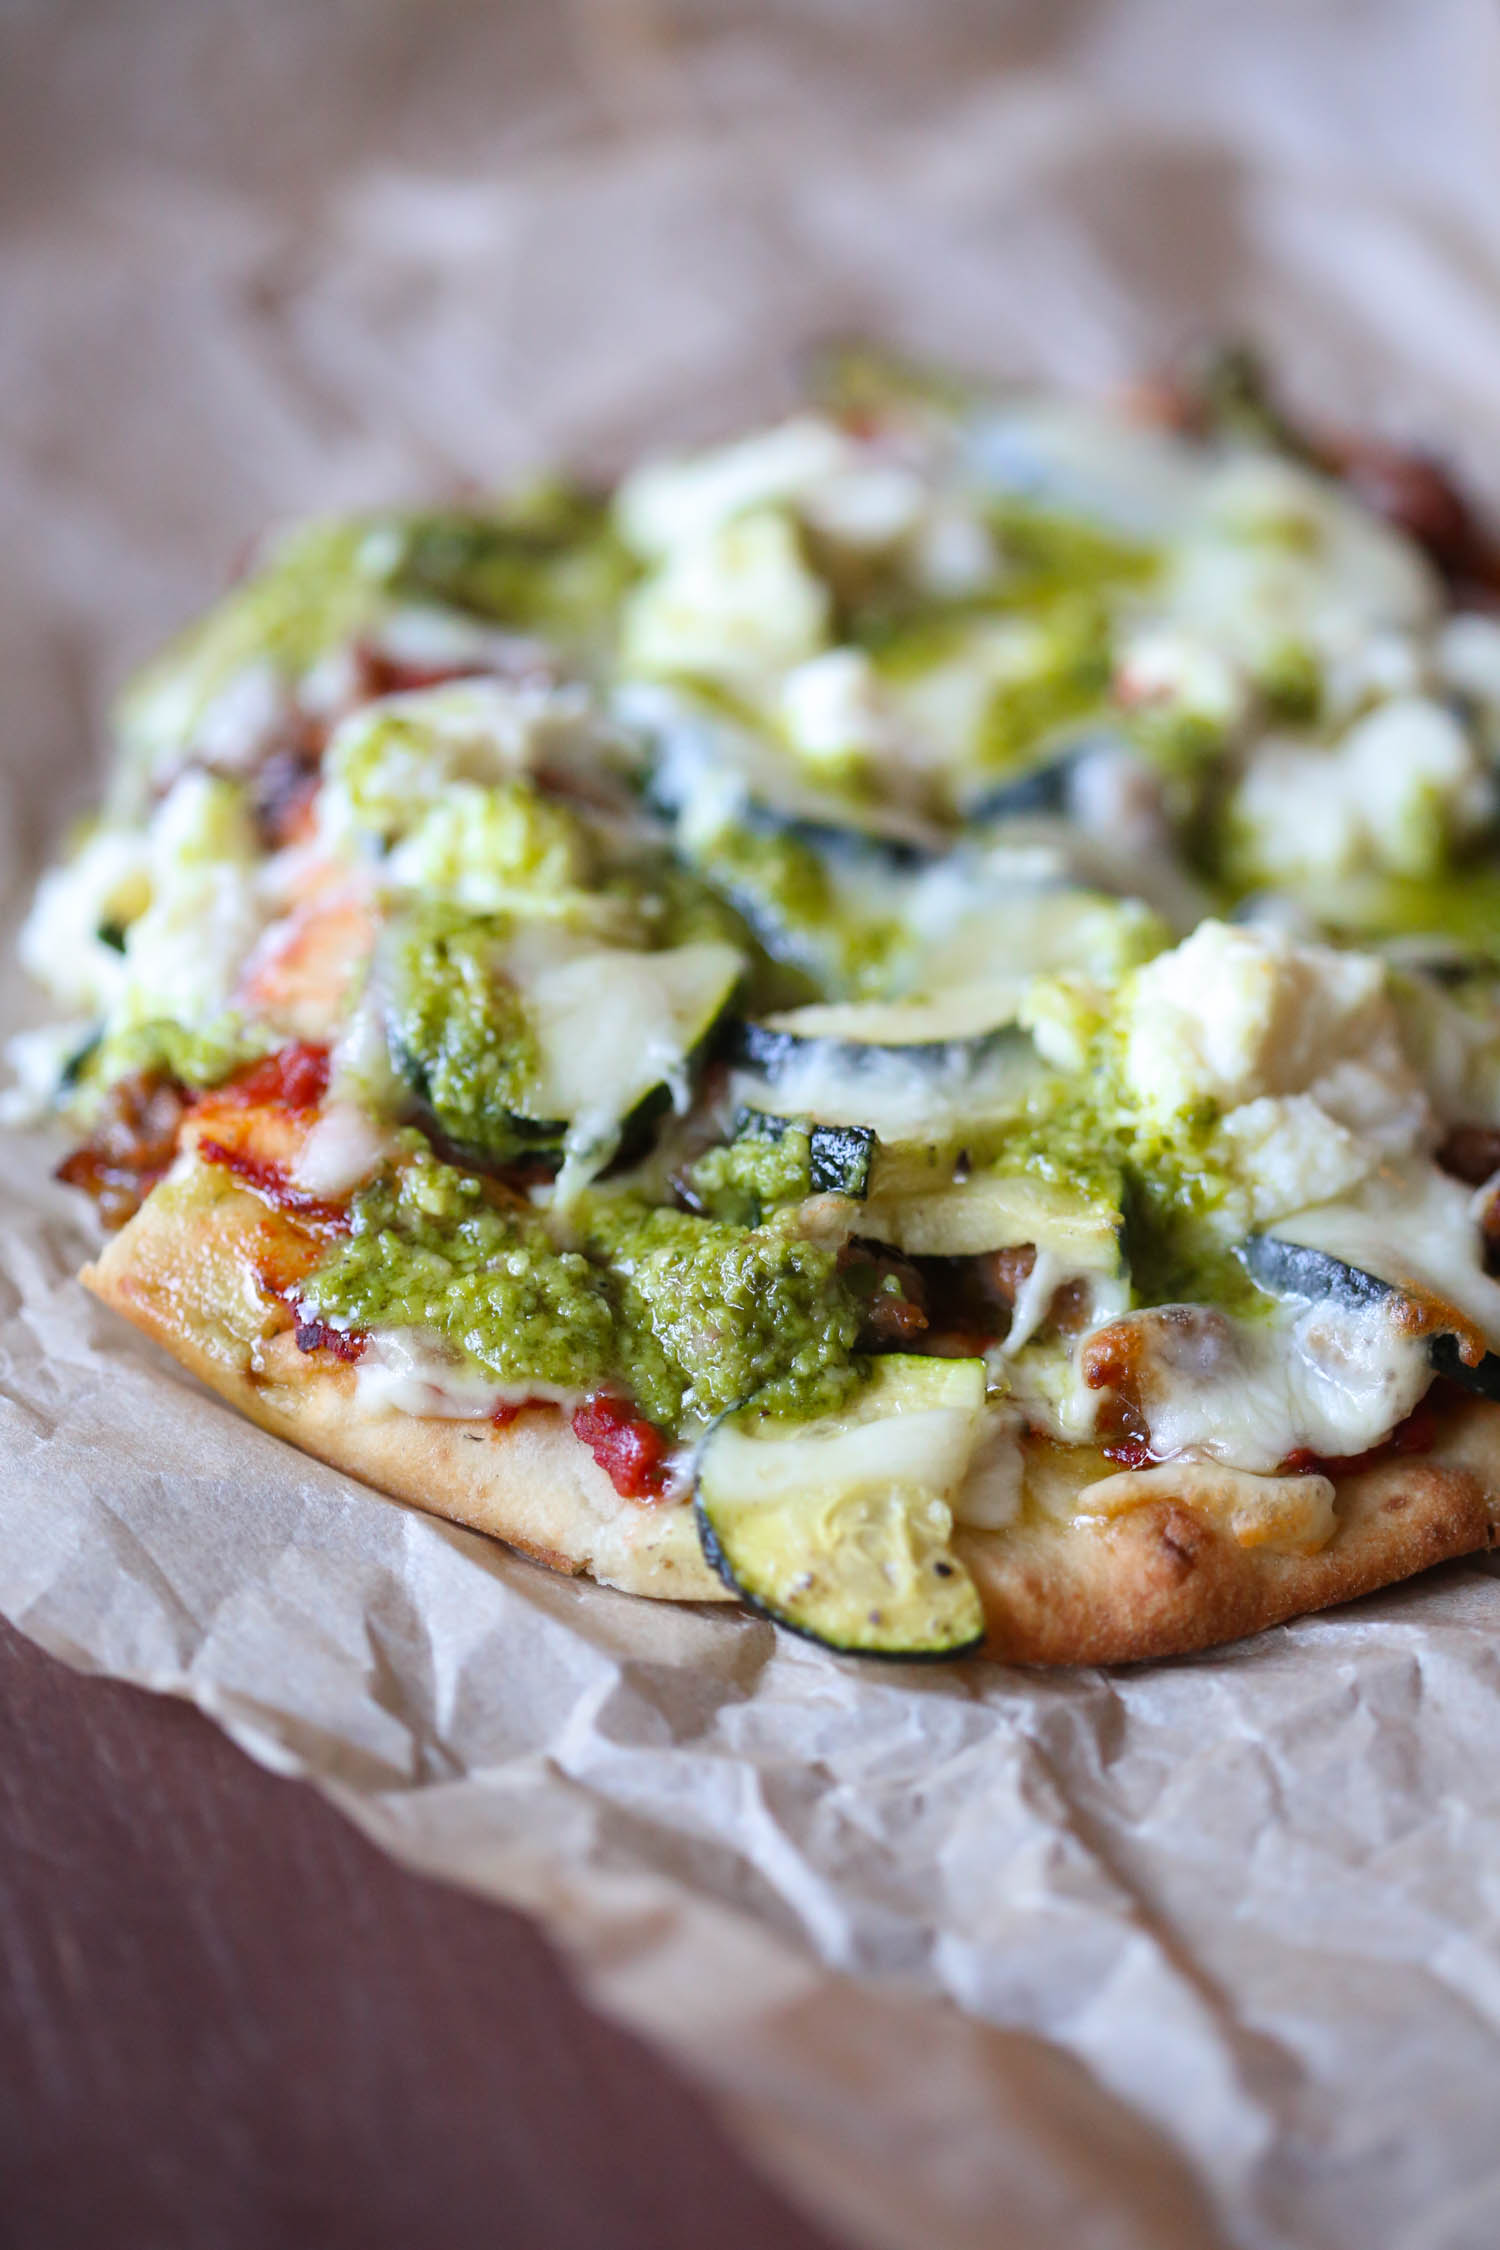 Italian sausage Pesto Flatbread Pizza from Our Best Bites